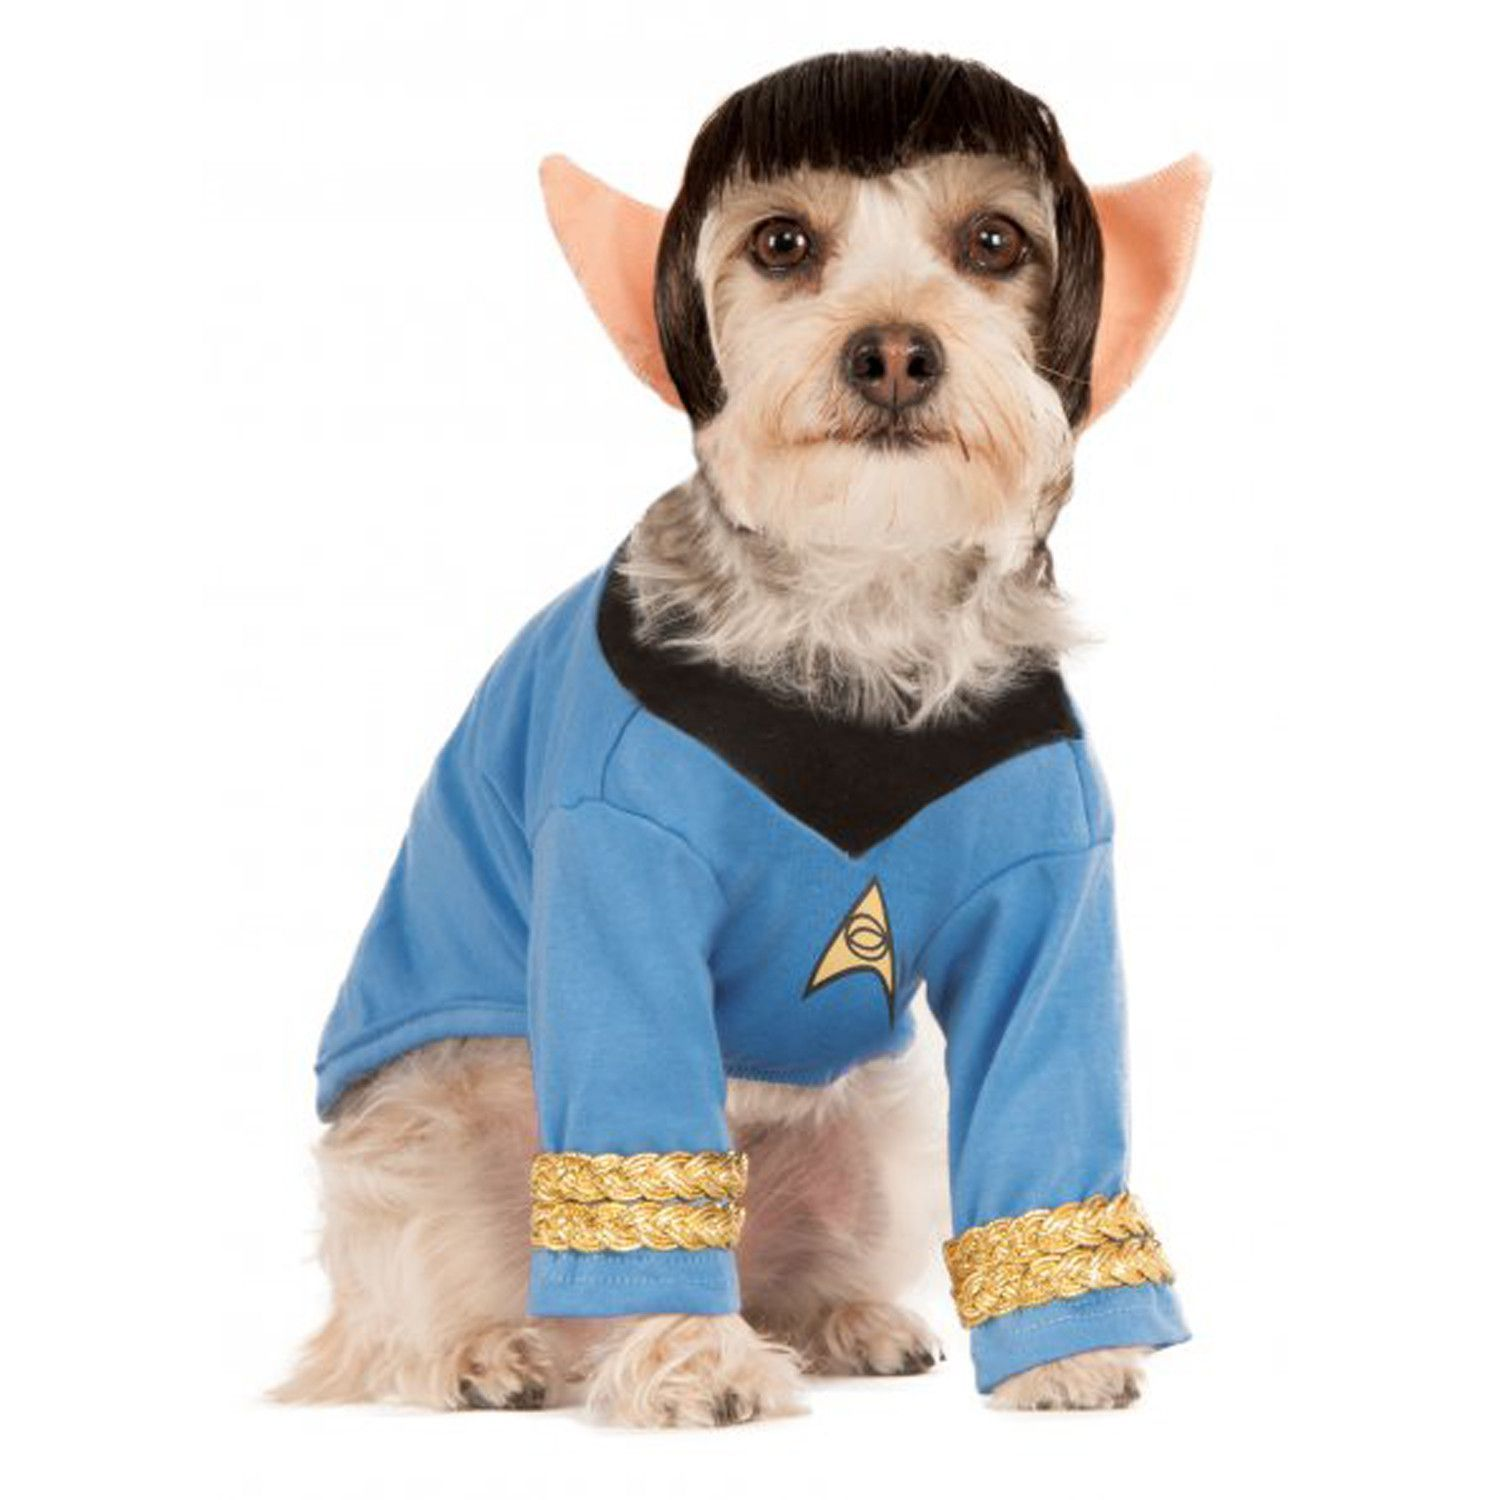 Travel To A World Beyond With The Star Trek Dog Costume With Spock